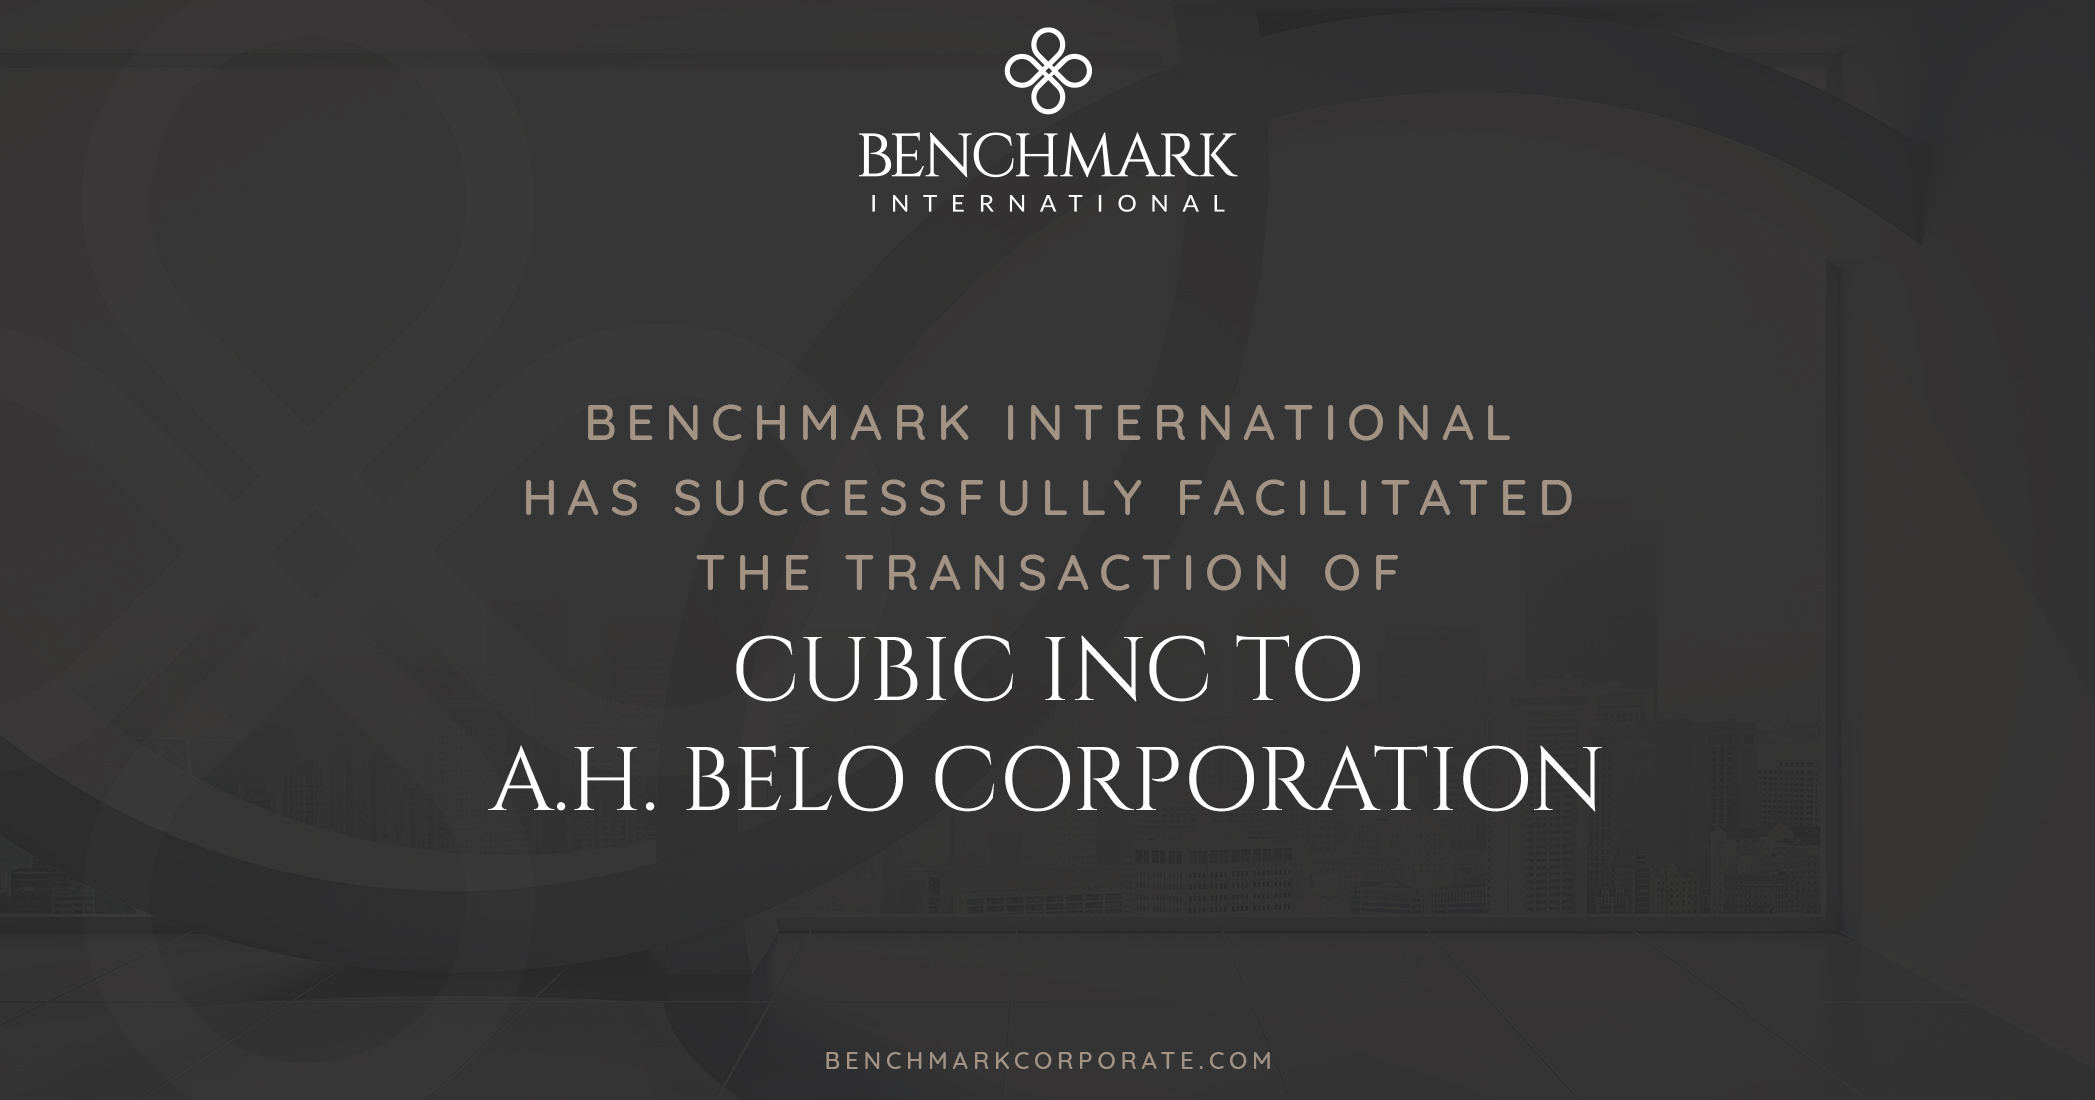 Benchmark International has successfully facilitated the sale of Cubic Inc., to A.H. Belo Corporation